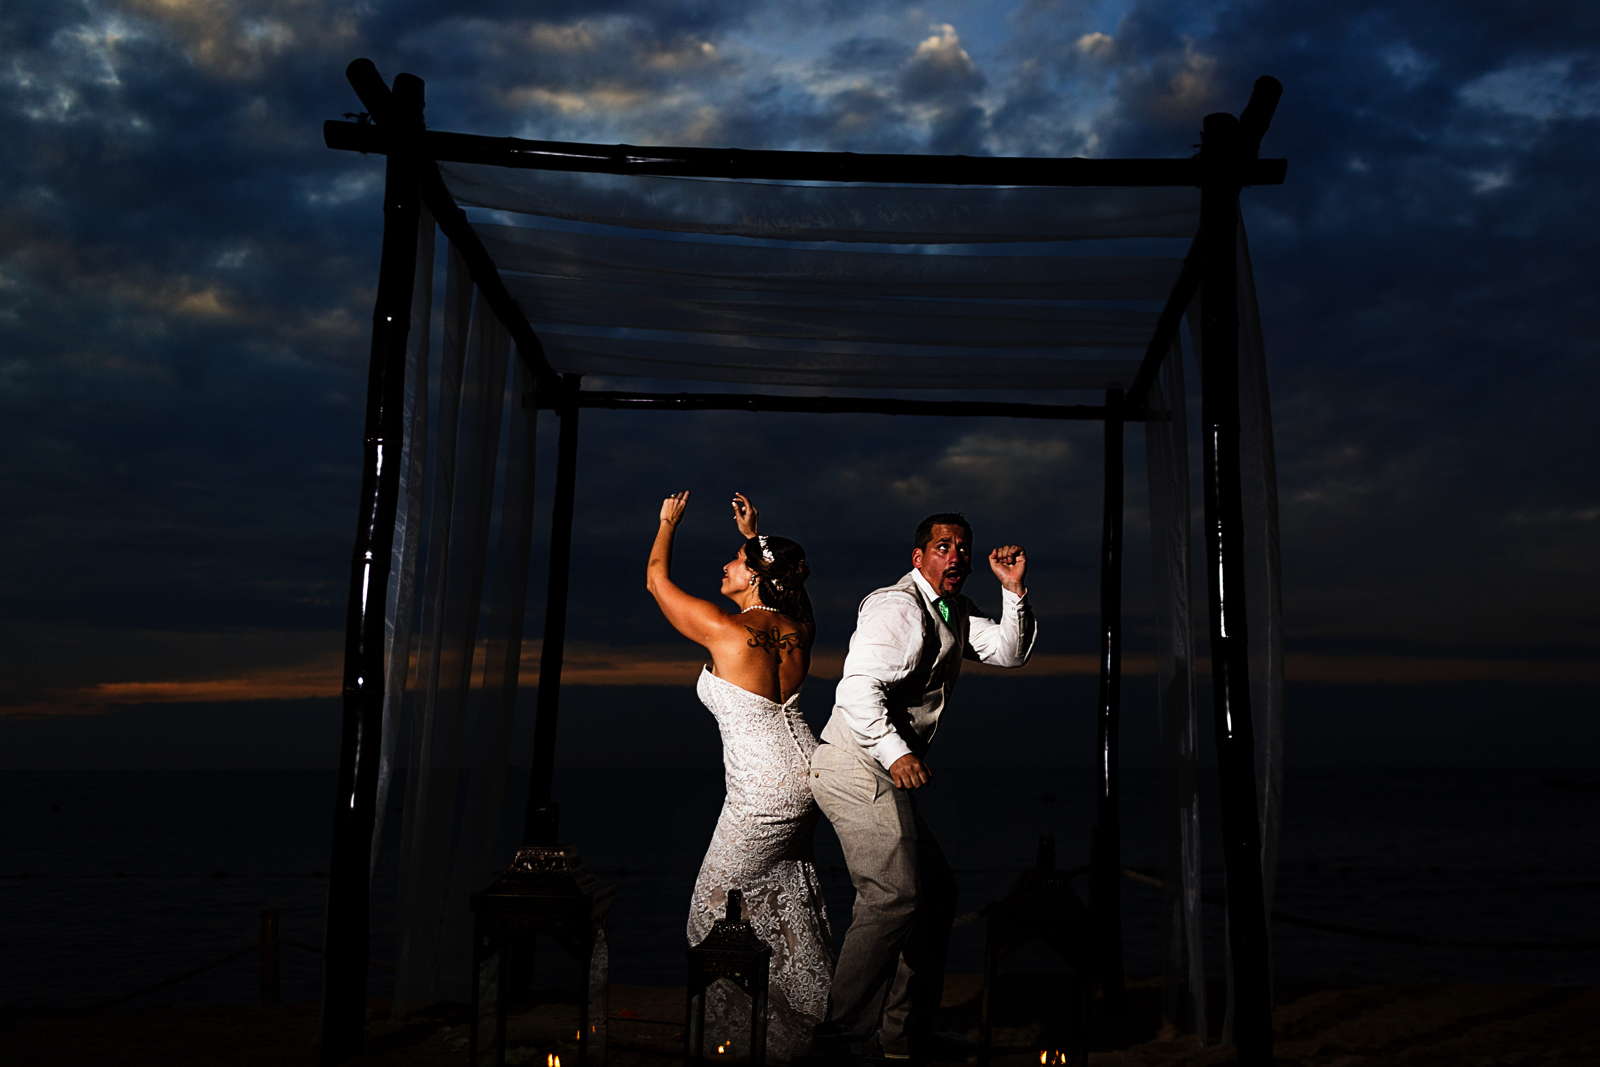 Portrait of the couple dancing under the chuppah at sunset on the beach